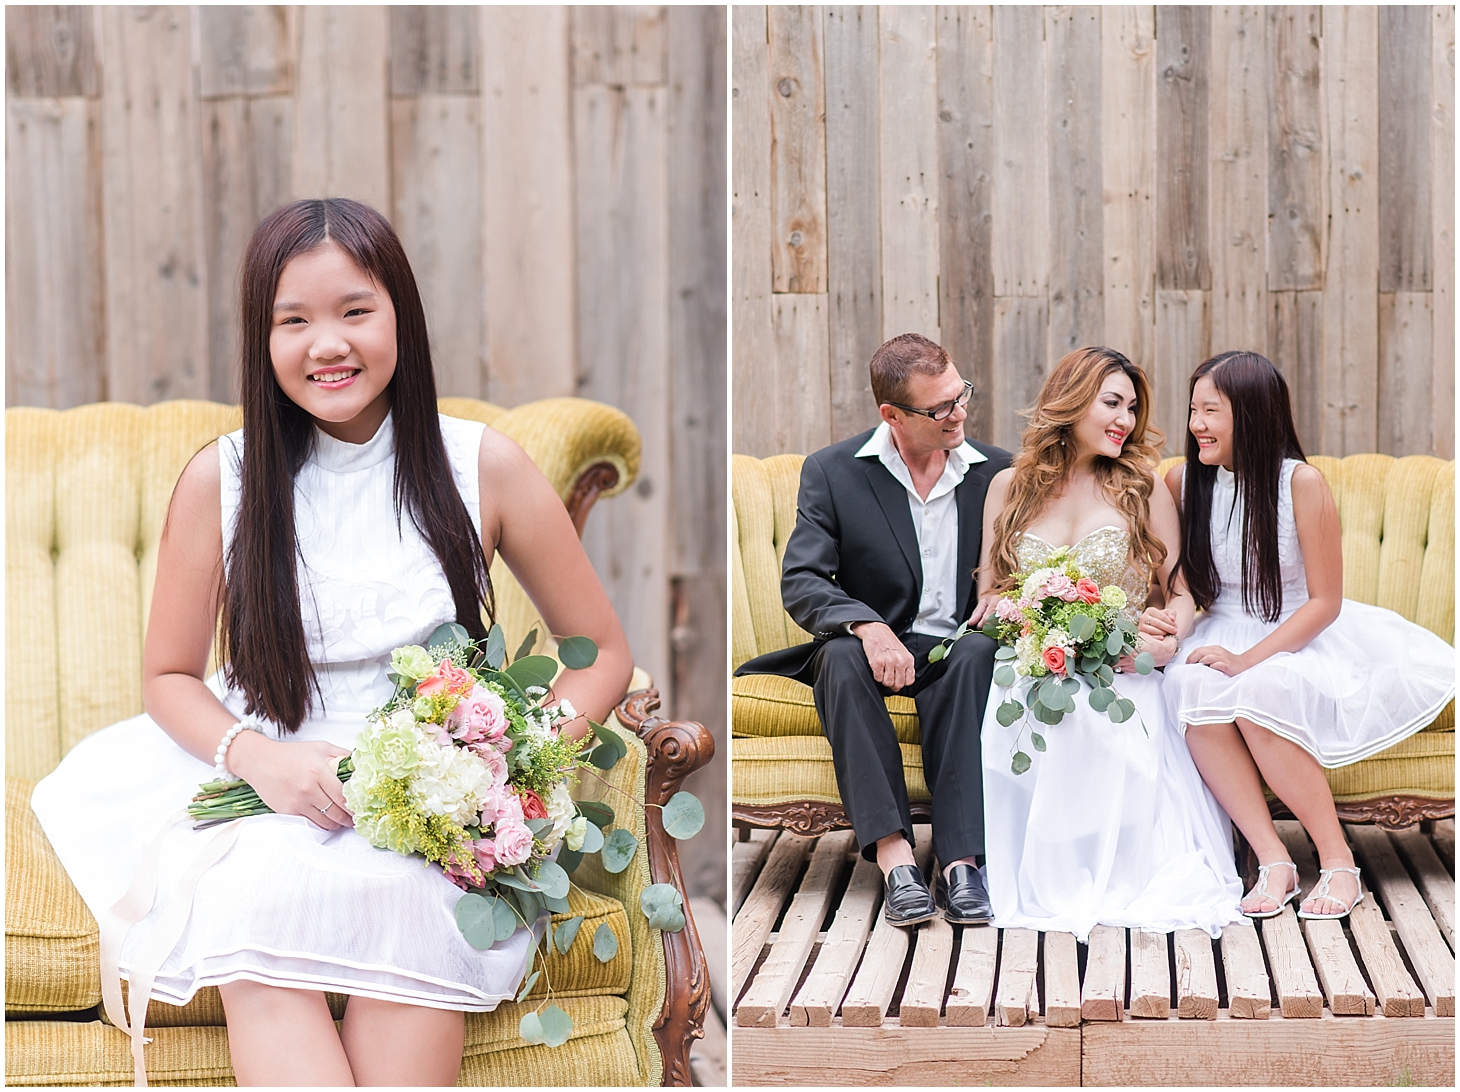 Lee Spack, Tina Dong, and Annie Dong, anniversary photo session at farm in Queen Creek, Arizona. Photos taken by Jade Min Photography.